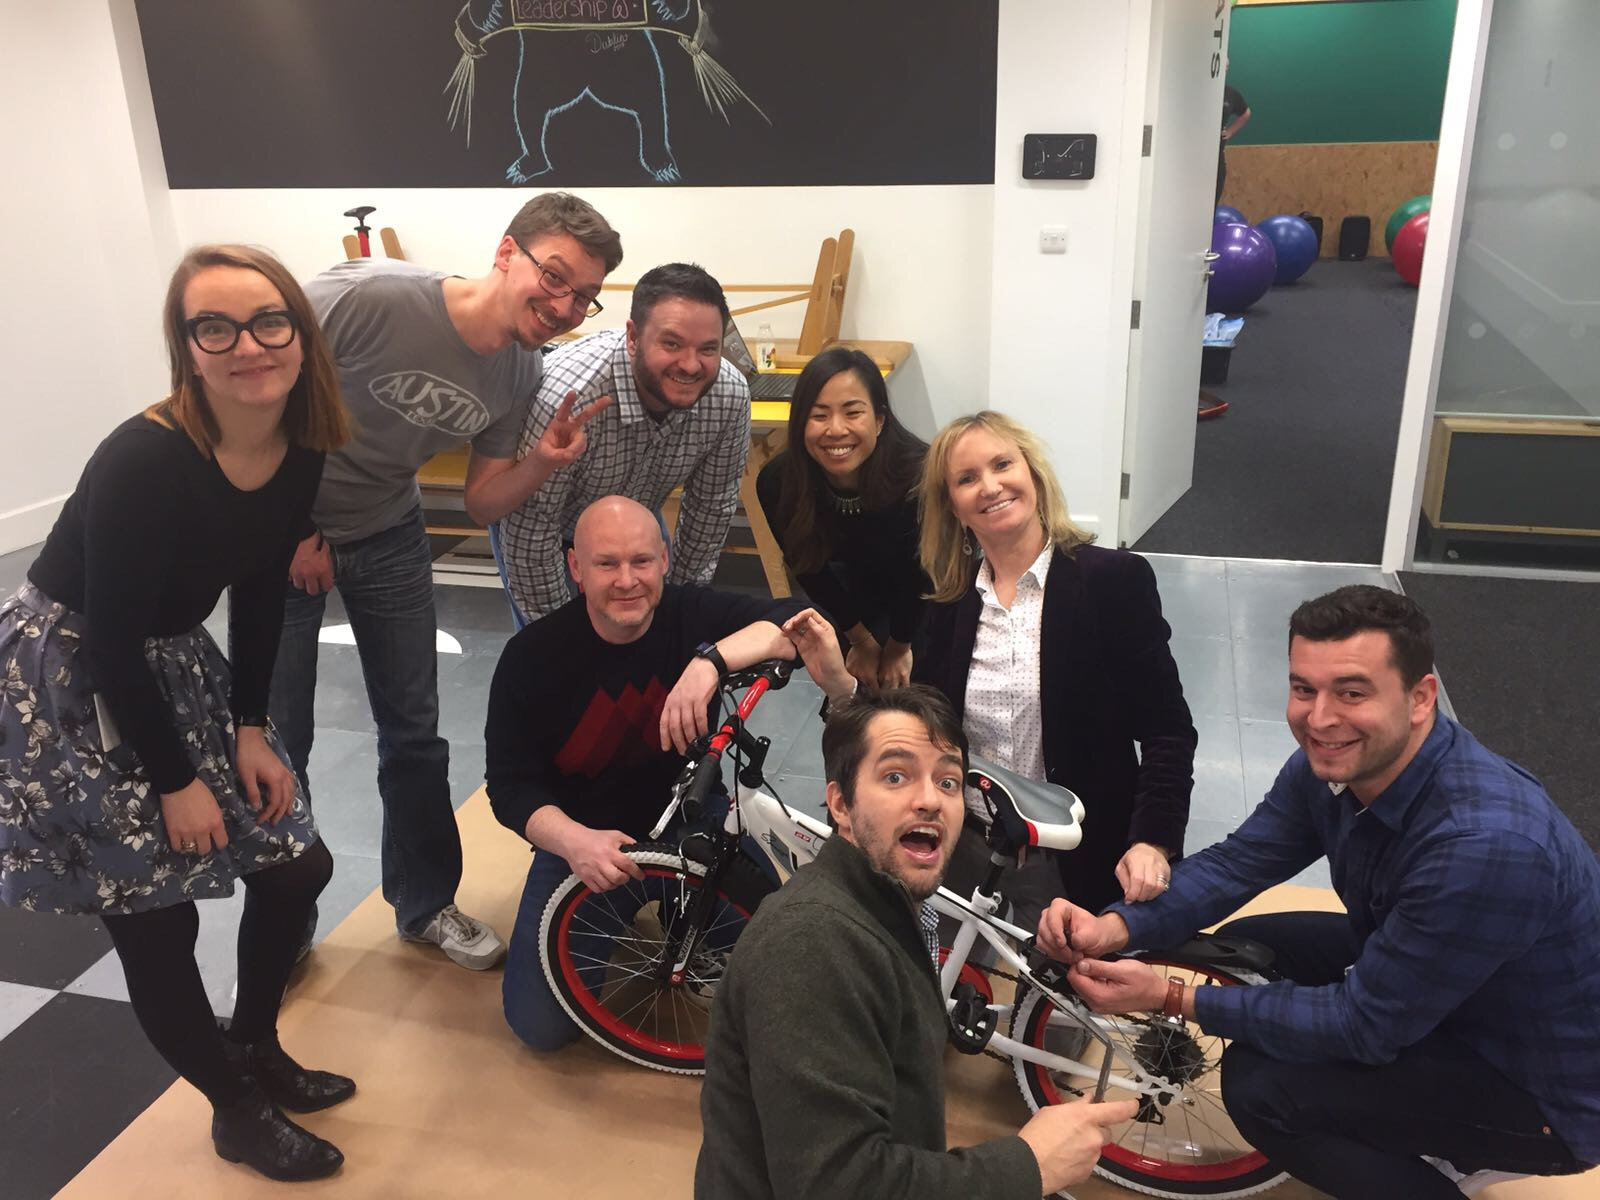 Charity Bike Build- Corporate Social Team smiling with their newly built bike for charity during Orangeworks team building activity Charity Bike Build.